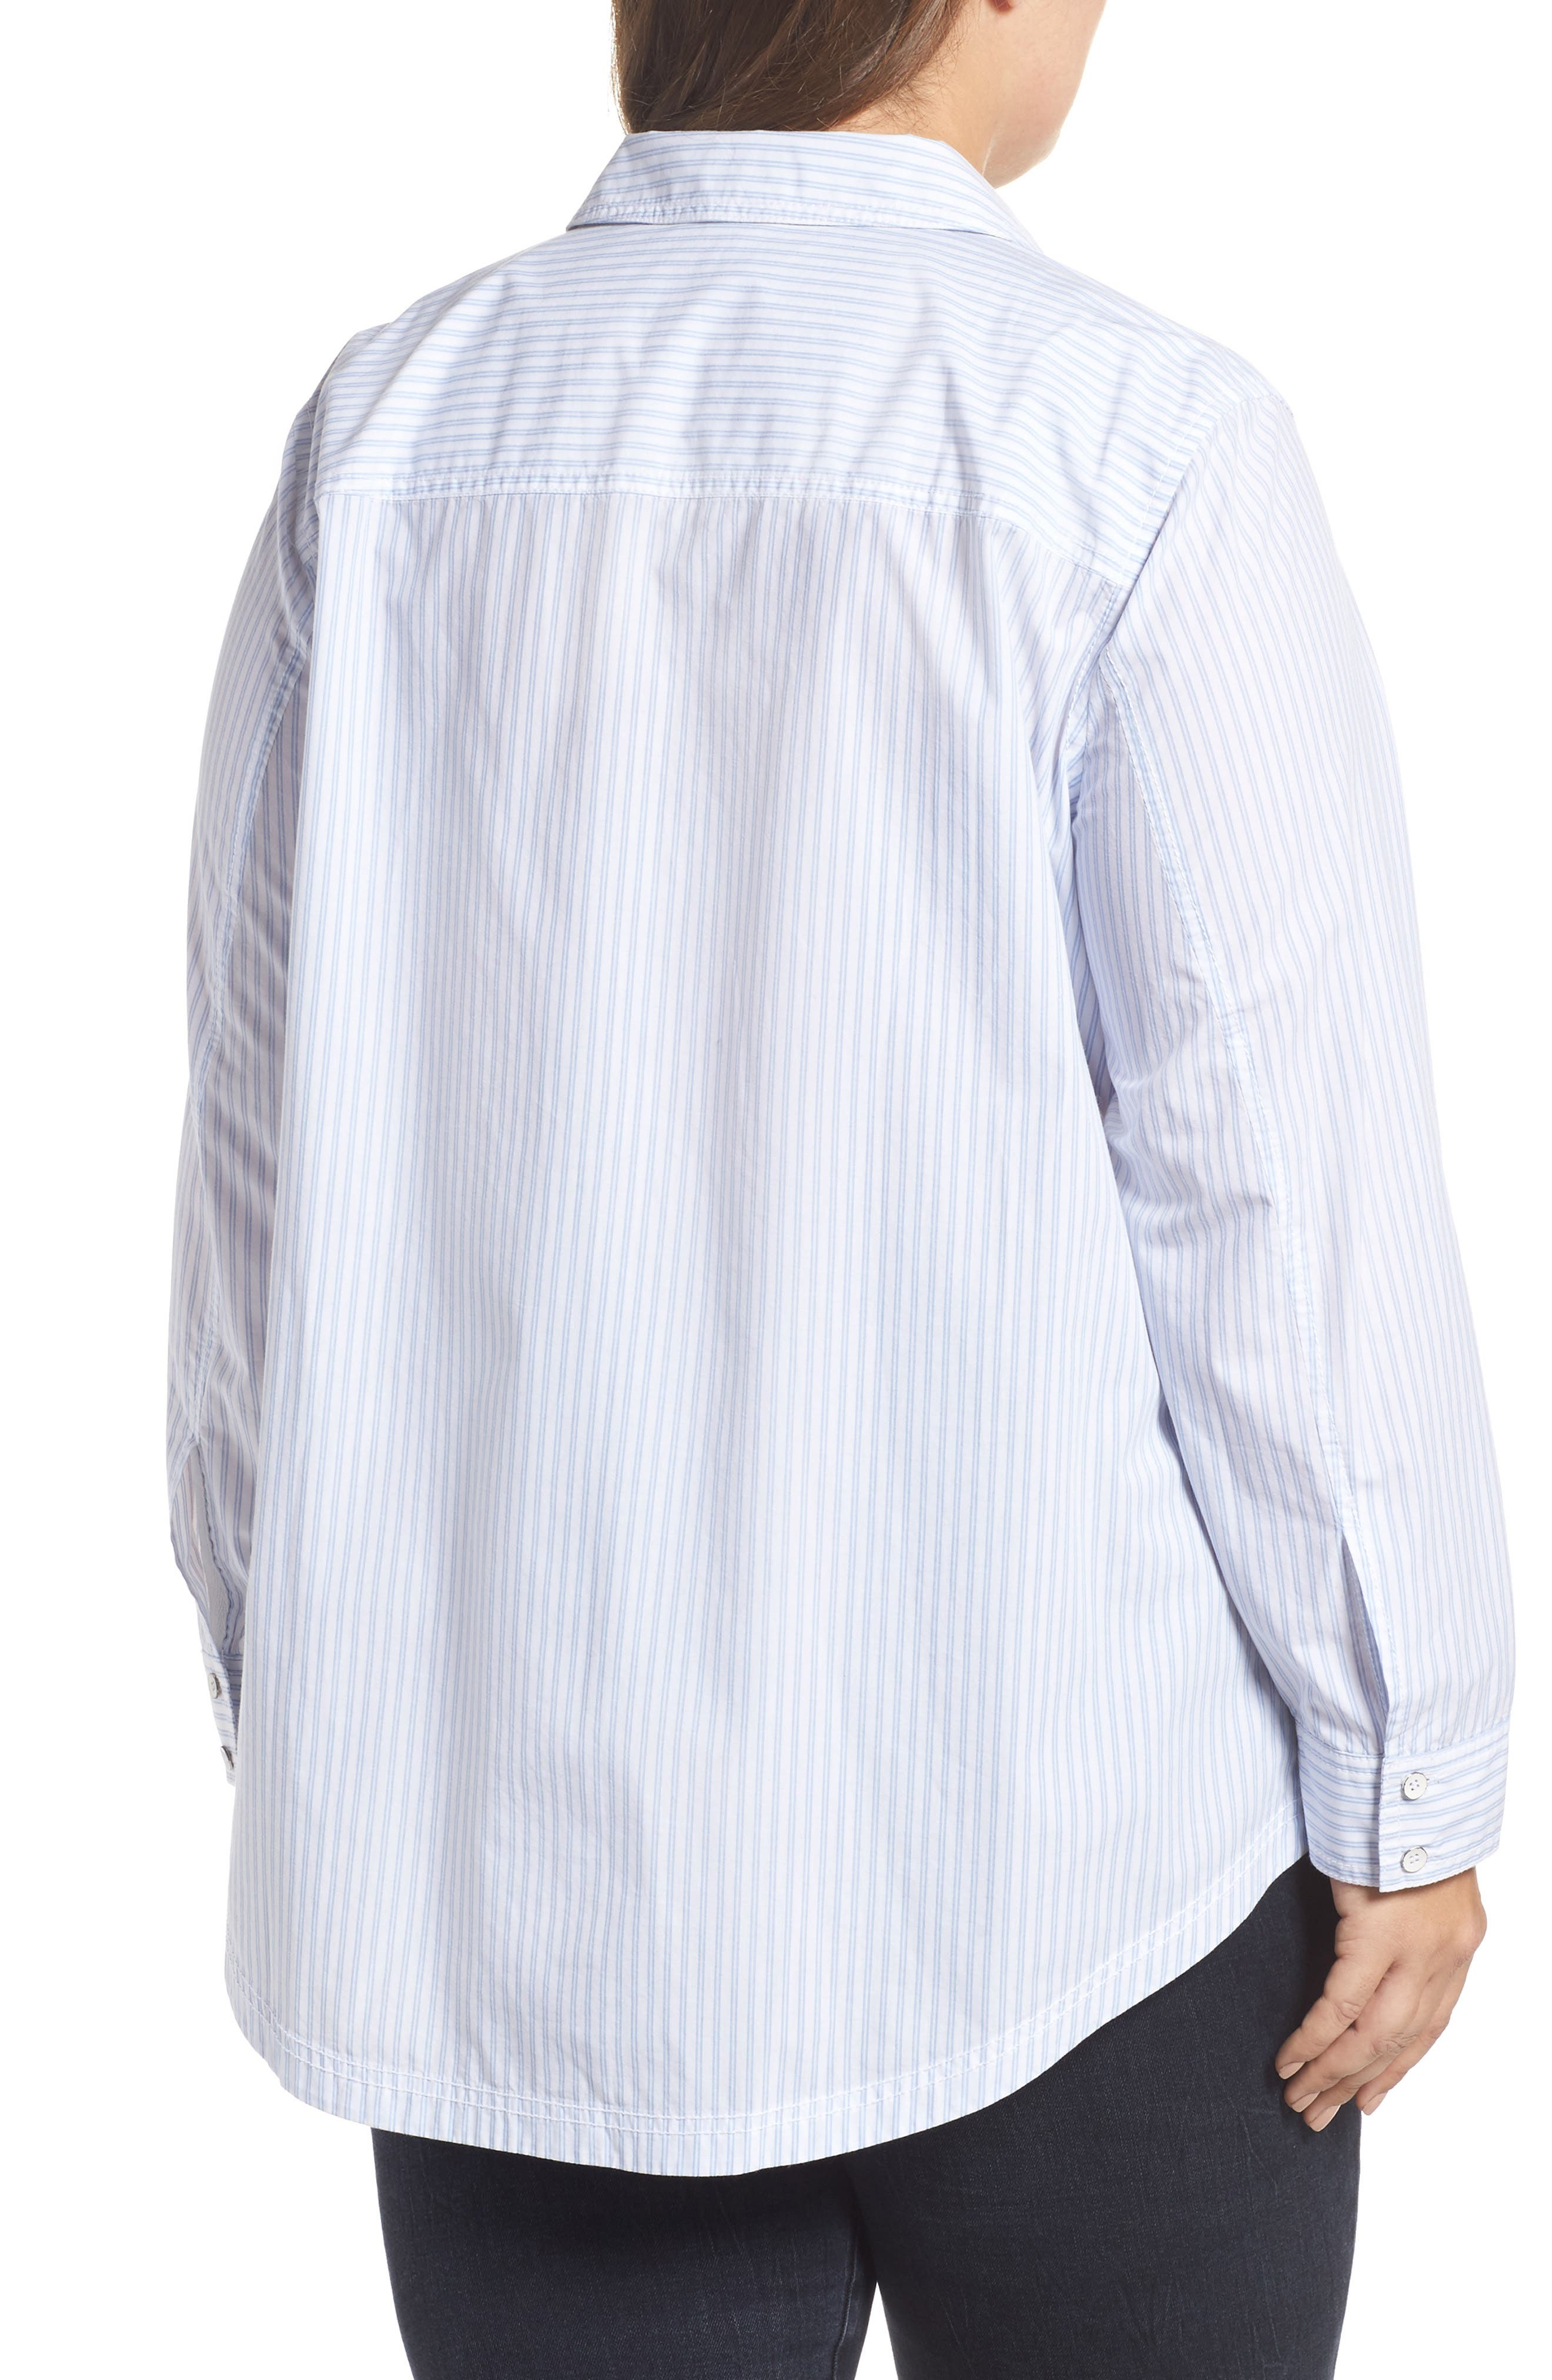 Stripe Button Front Shirt,                             Alternate thumbnail 2, color,                             420